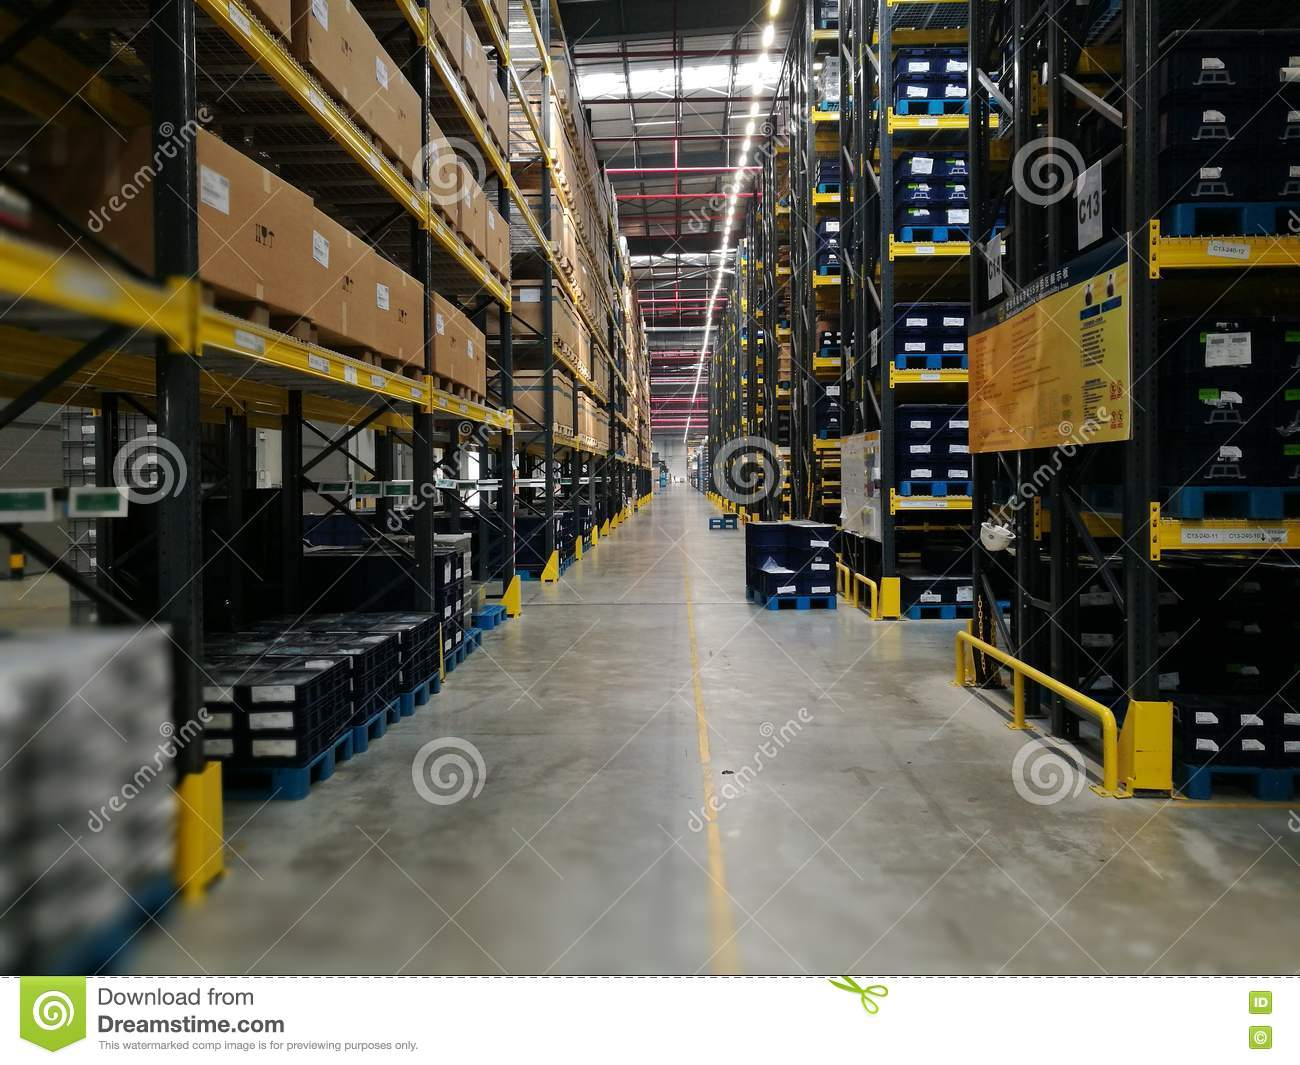 Modern warehouse within plastic boxes and the shelf stocking raw material